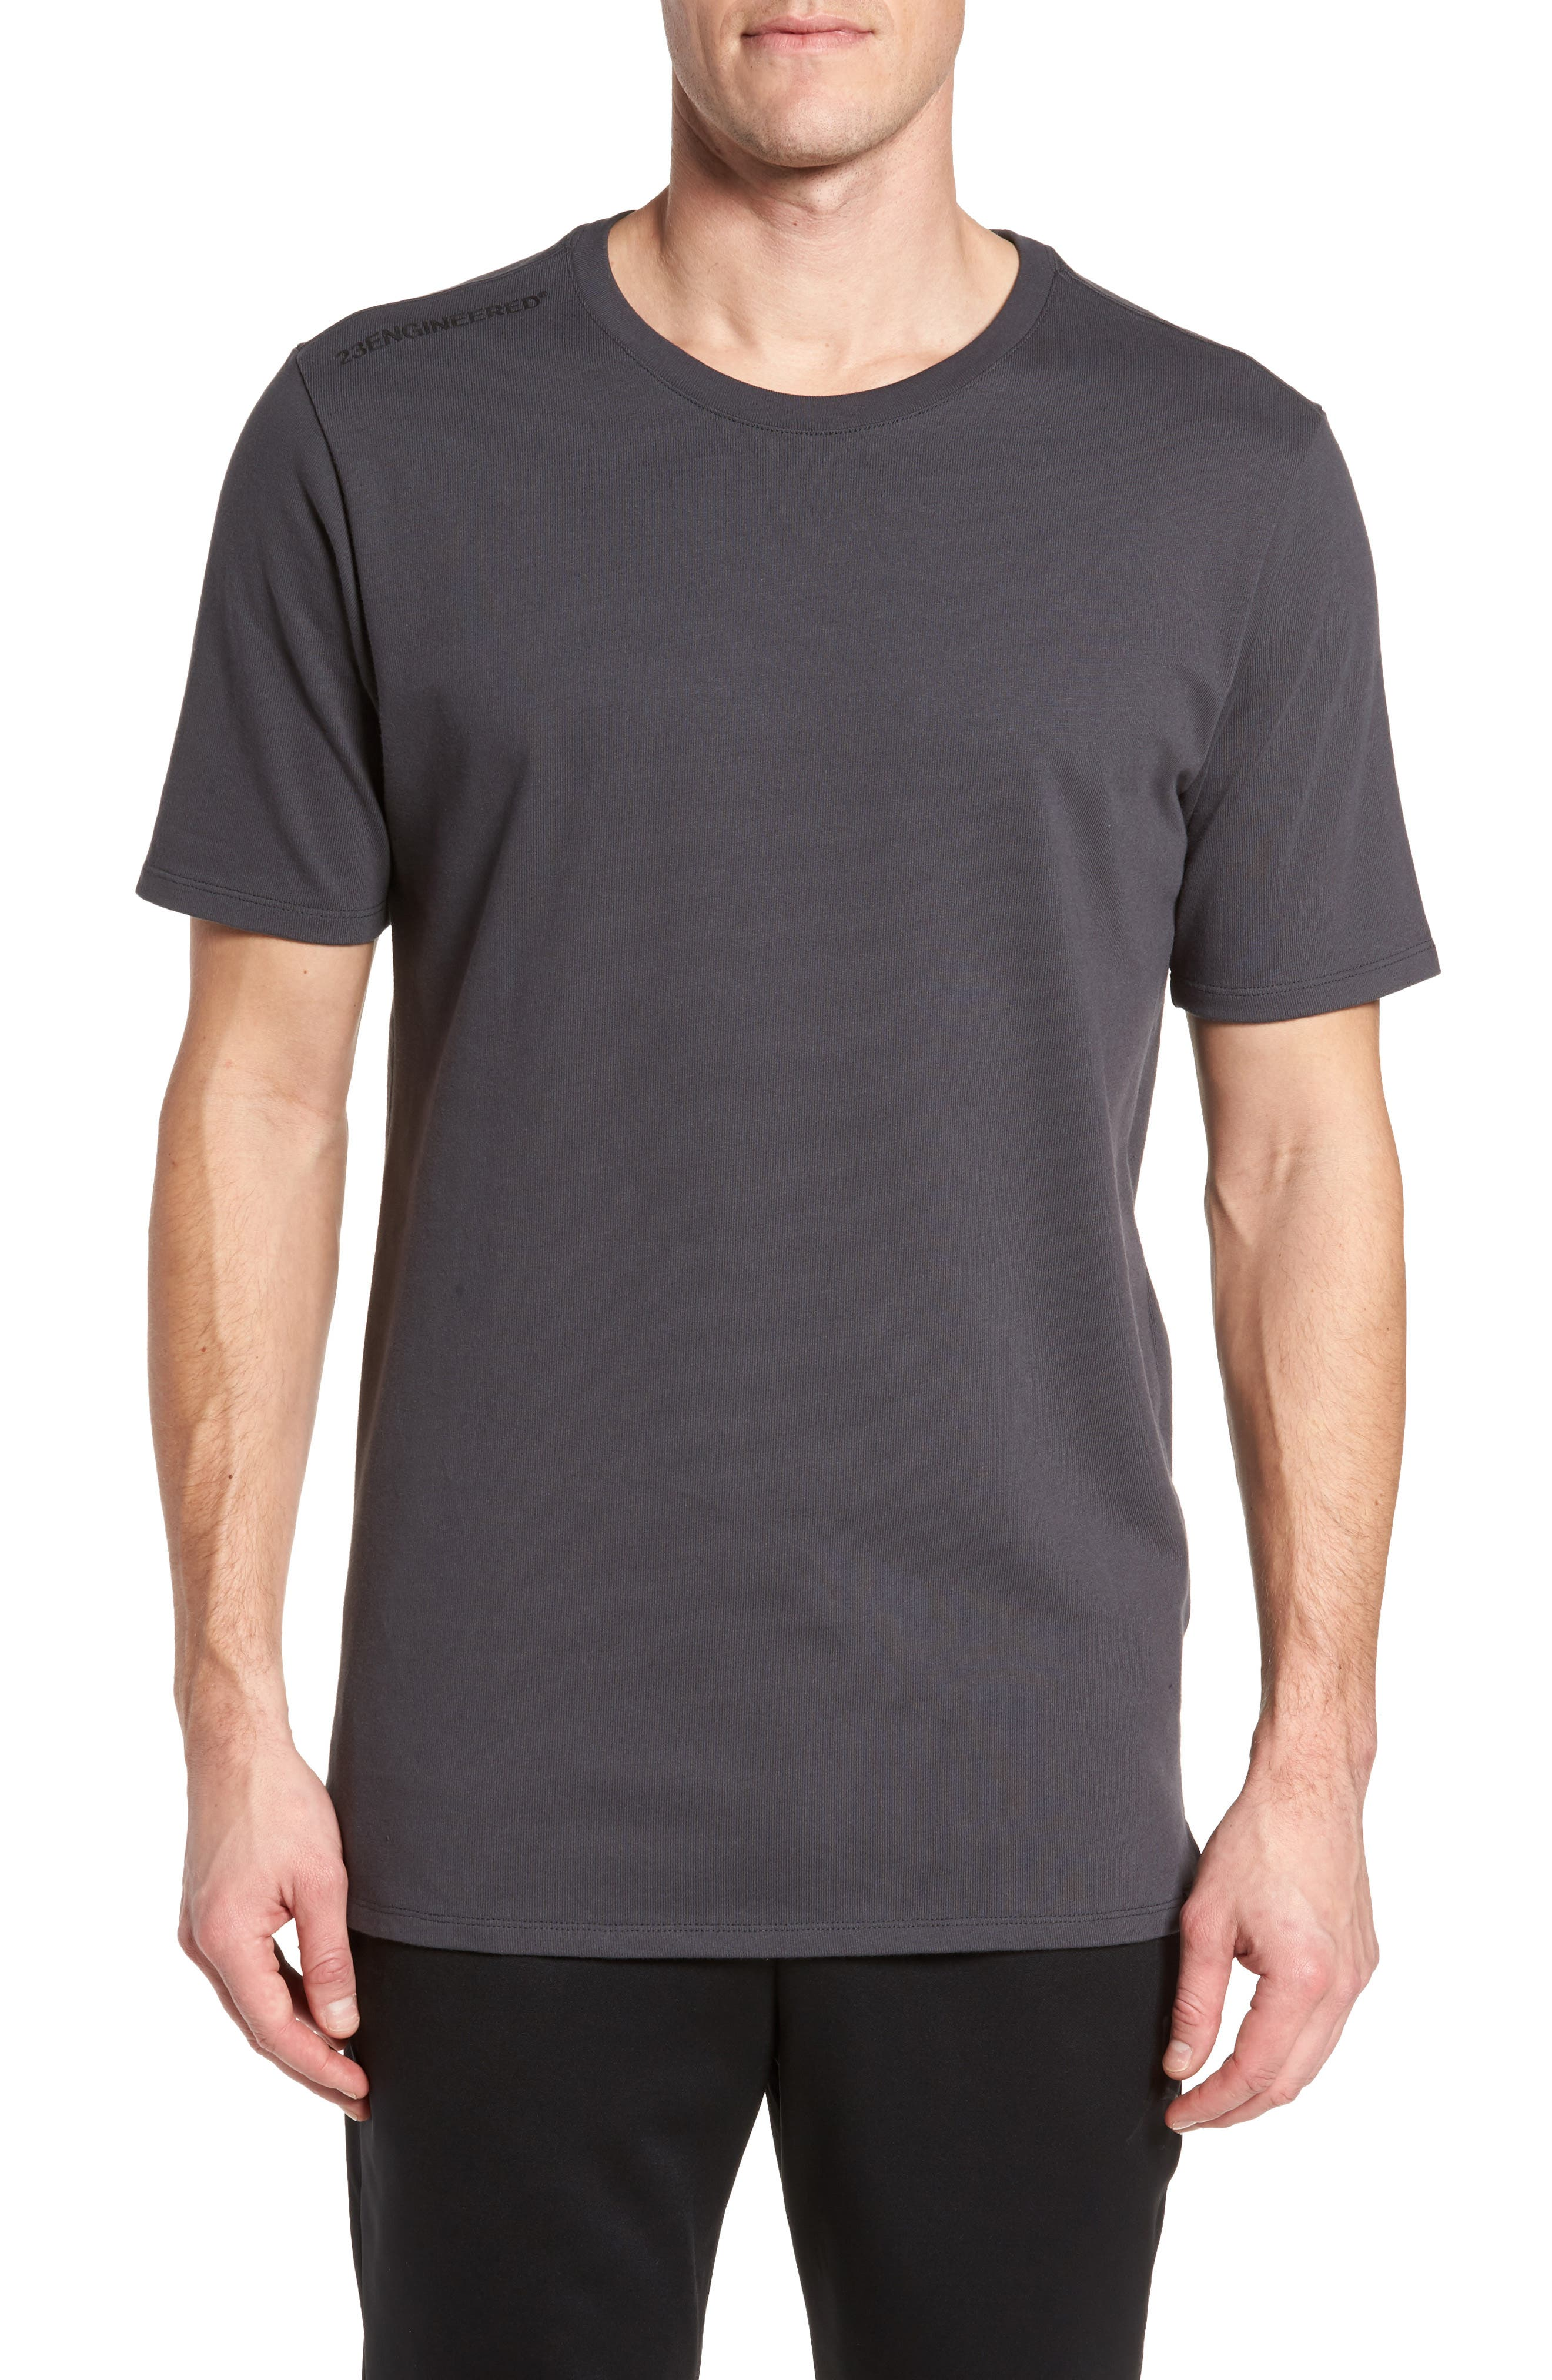 Sportswear 23 Engineered T-Shirt,                         Main,                         color, Anthracite/ Black